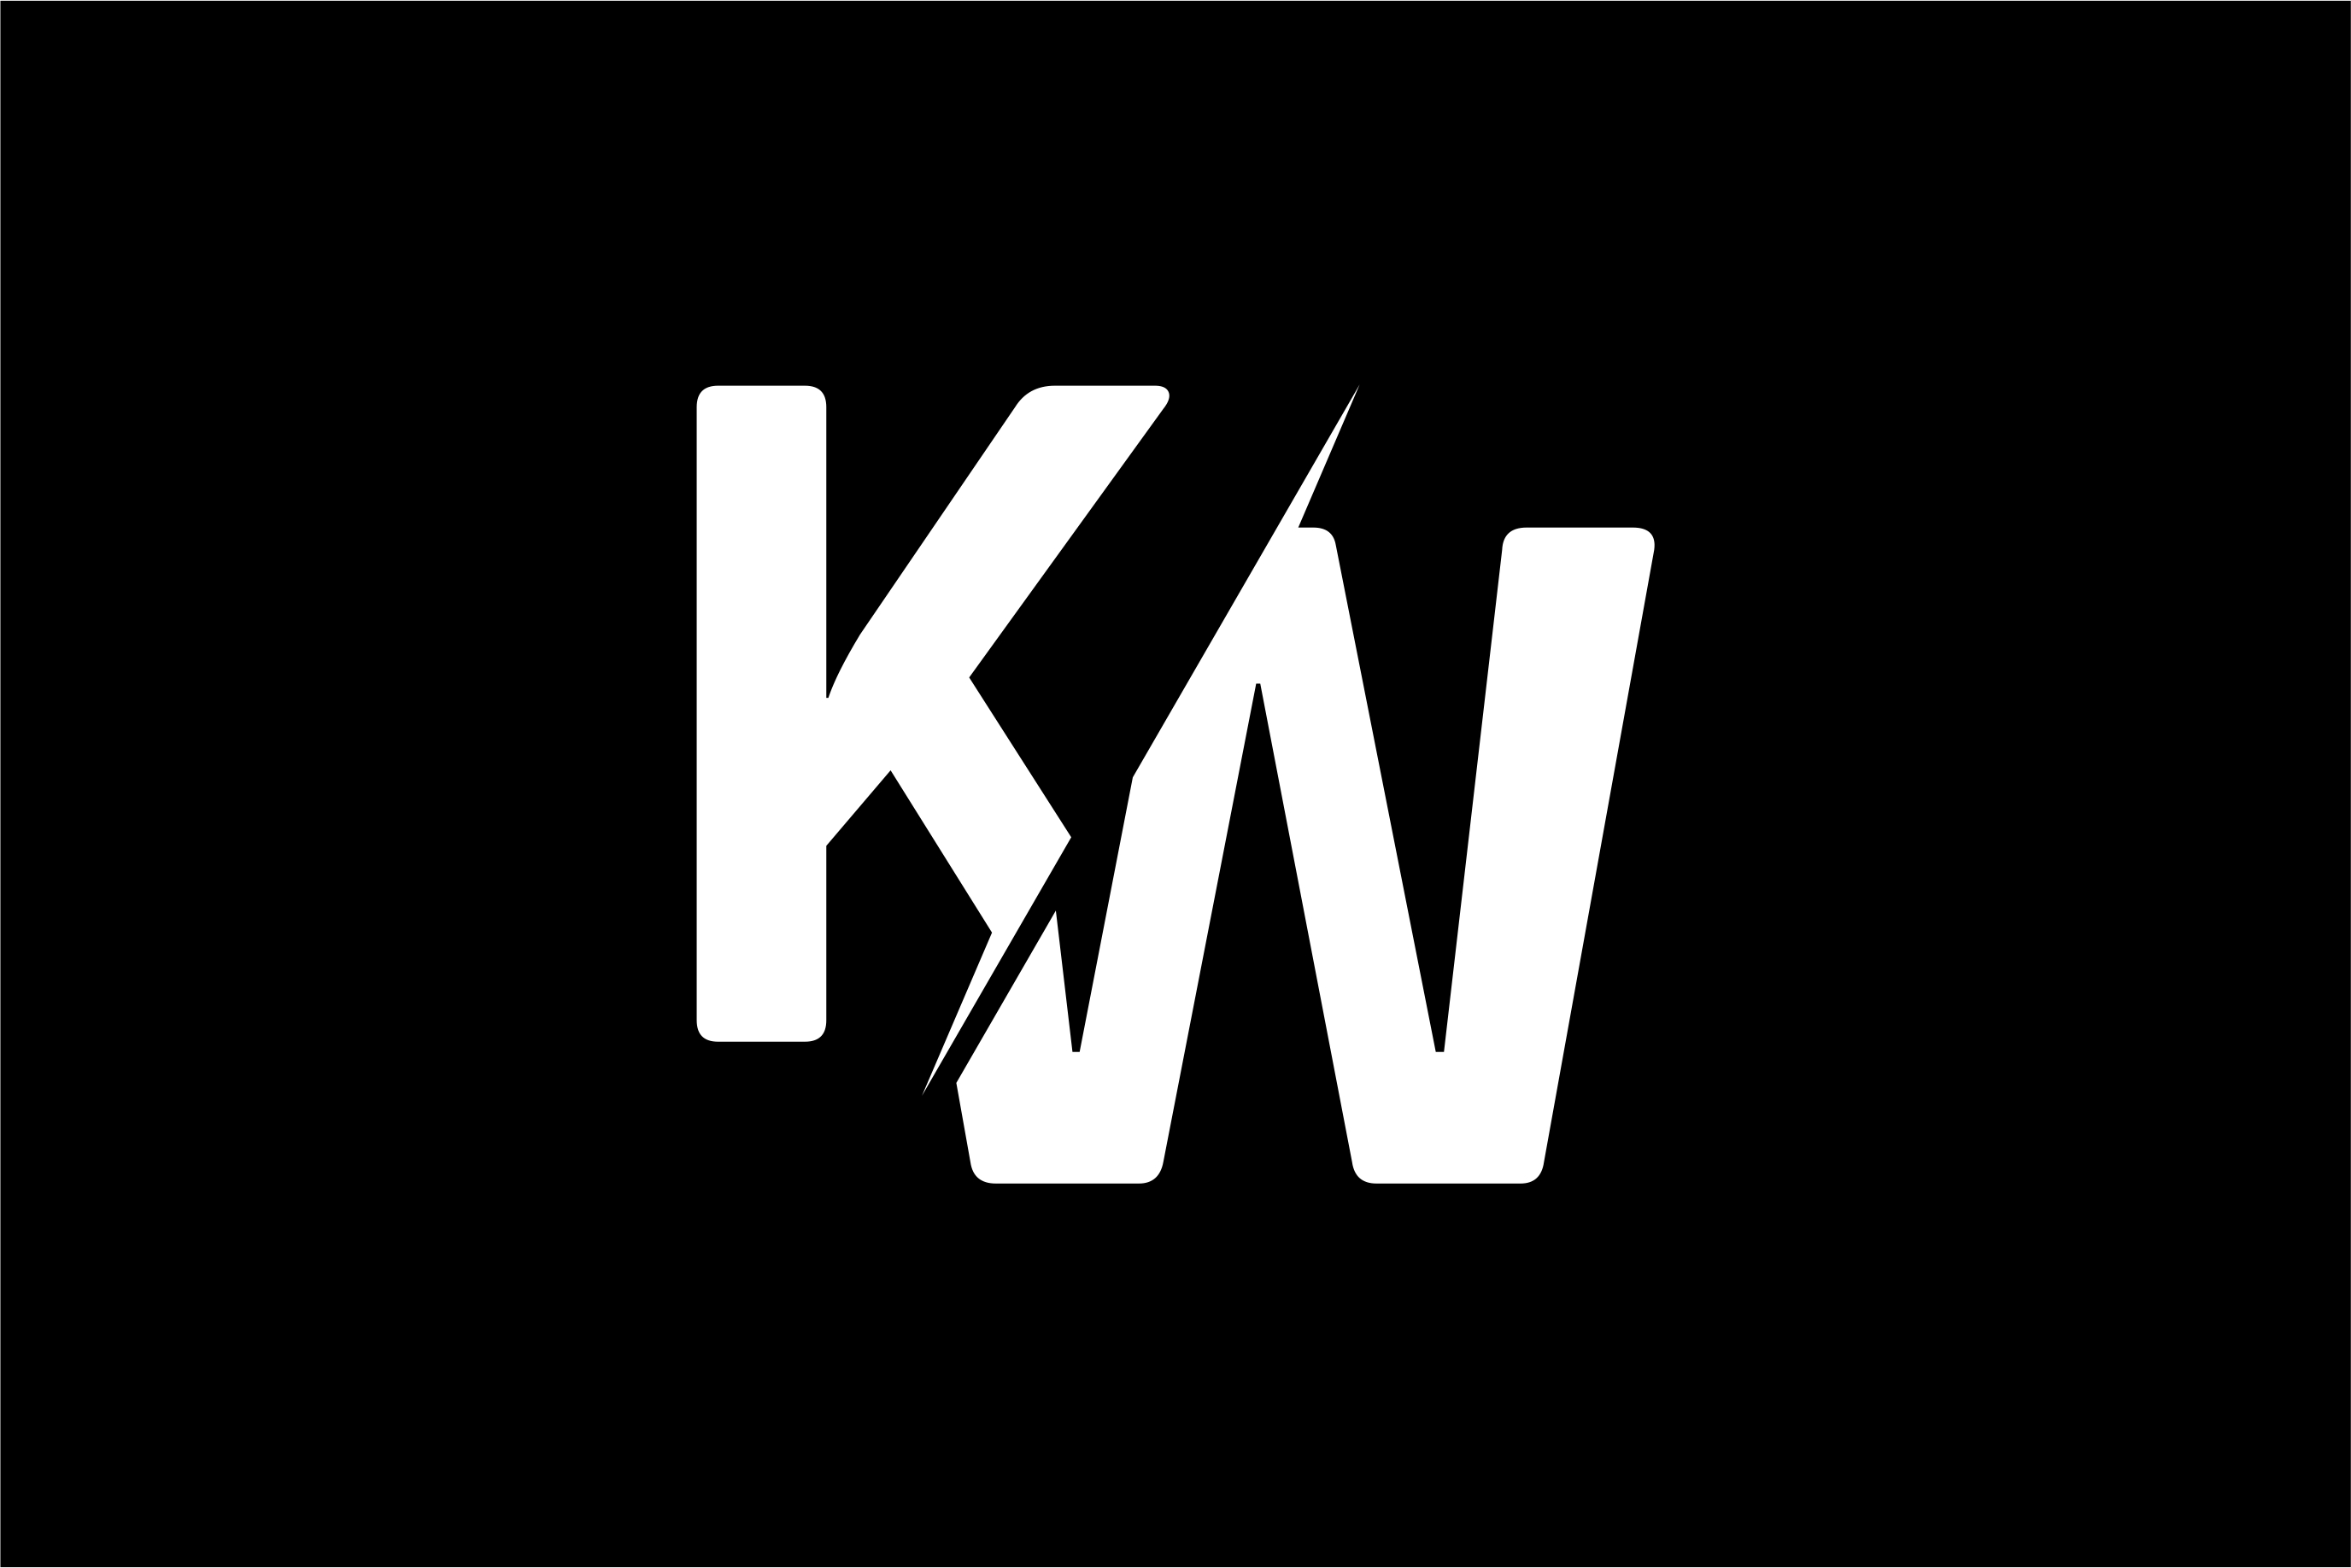 Monogram KW Logo Design.